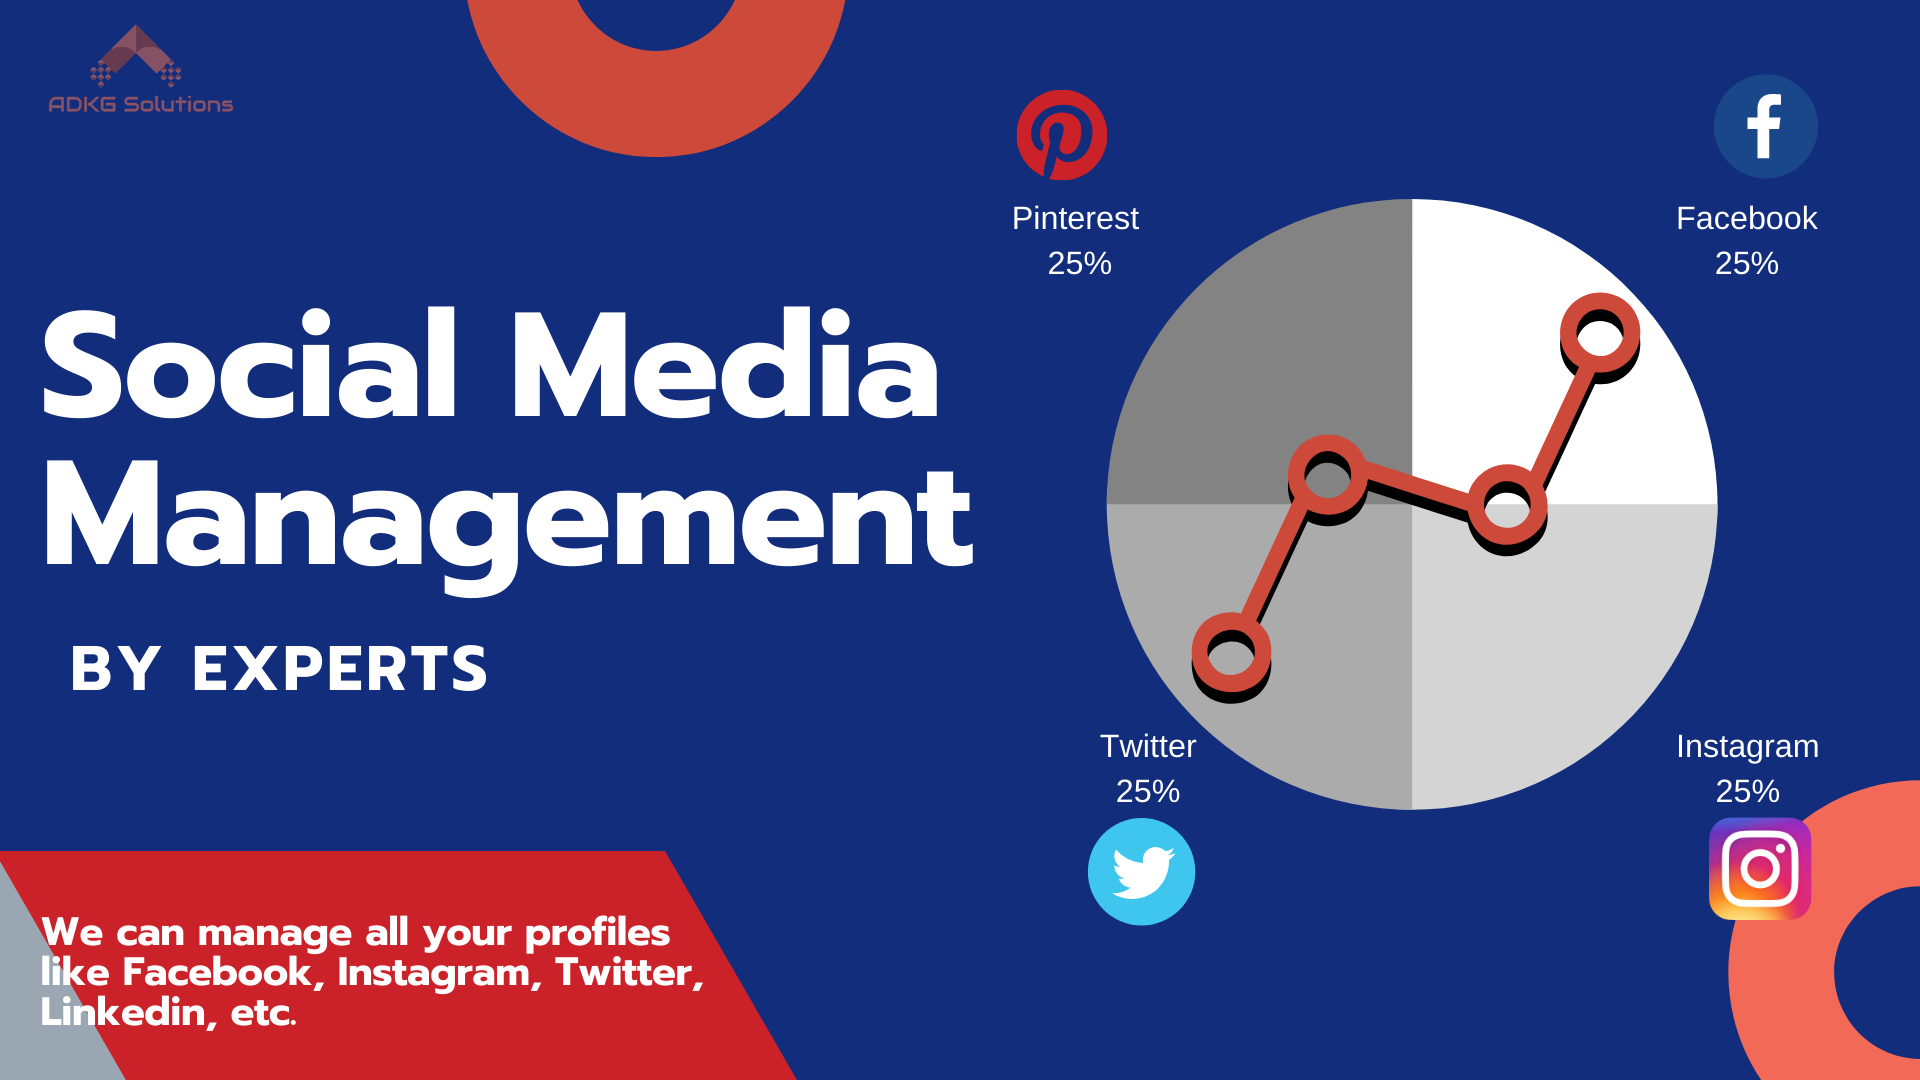 I Will Be Your Social Media Manager For 30 Days And Post 2-3 On Daily Basis